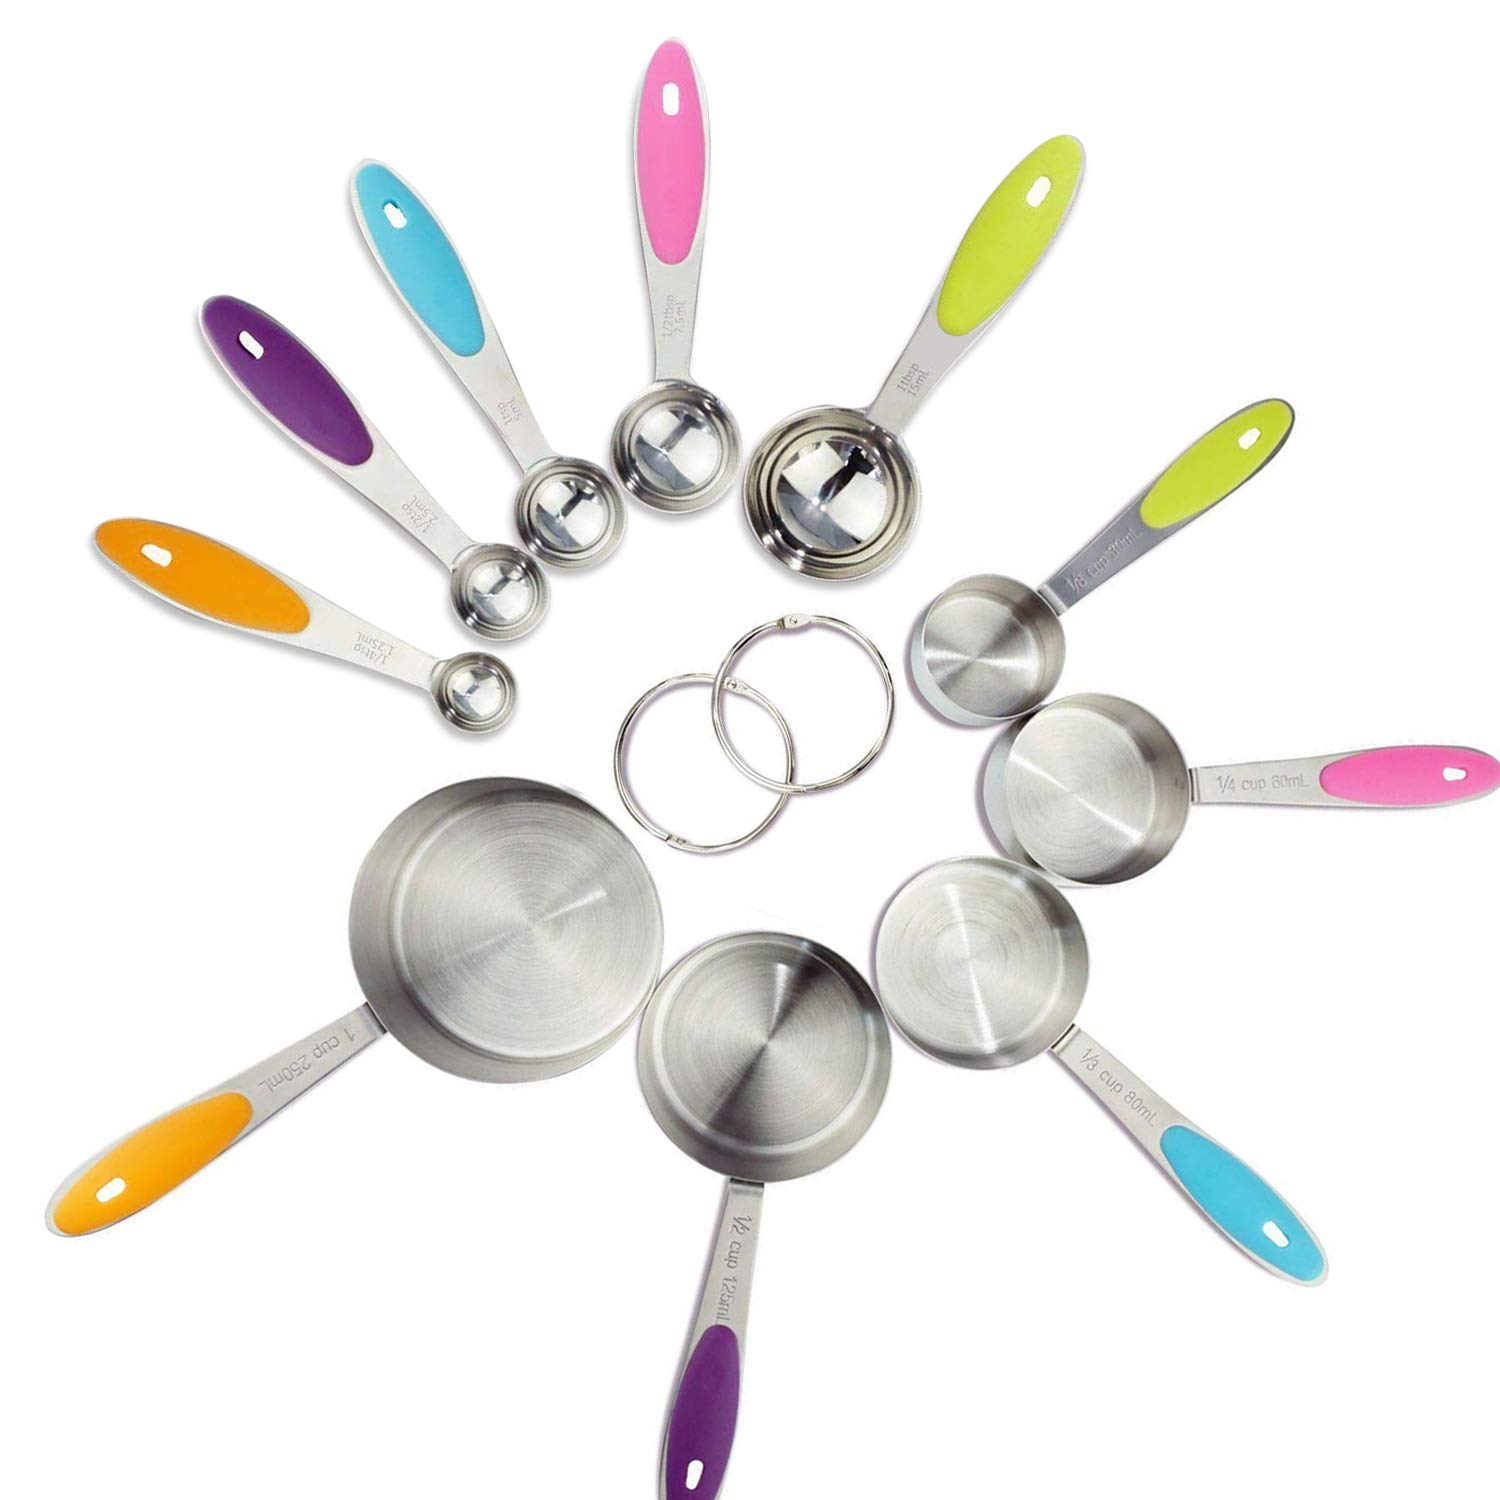 CestMall Measuring Cups and Spoons Set of 10, Durable Stainless Steel 5 Measuring Cups and 5 Measuring Spoons with 2 O Rings Multicolored Silicone Handles for Measuring Dry and Liquid Ingredients